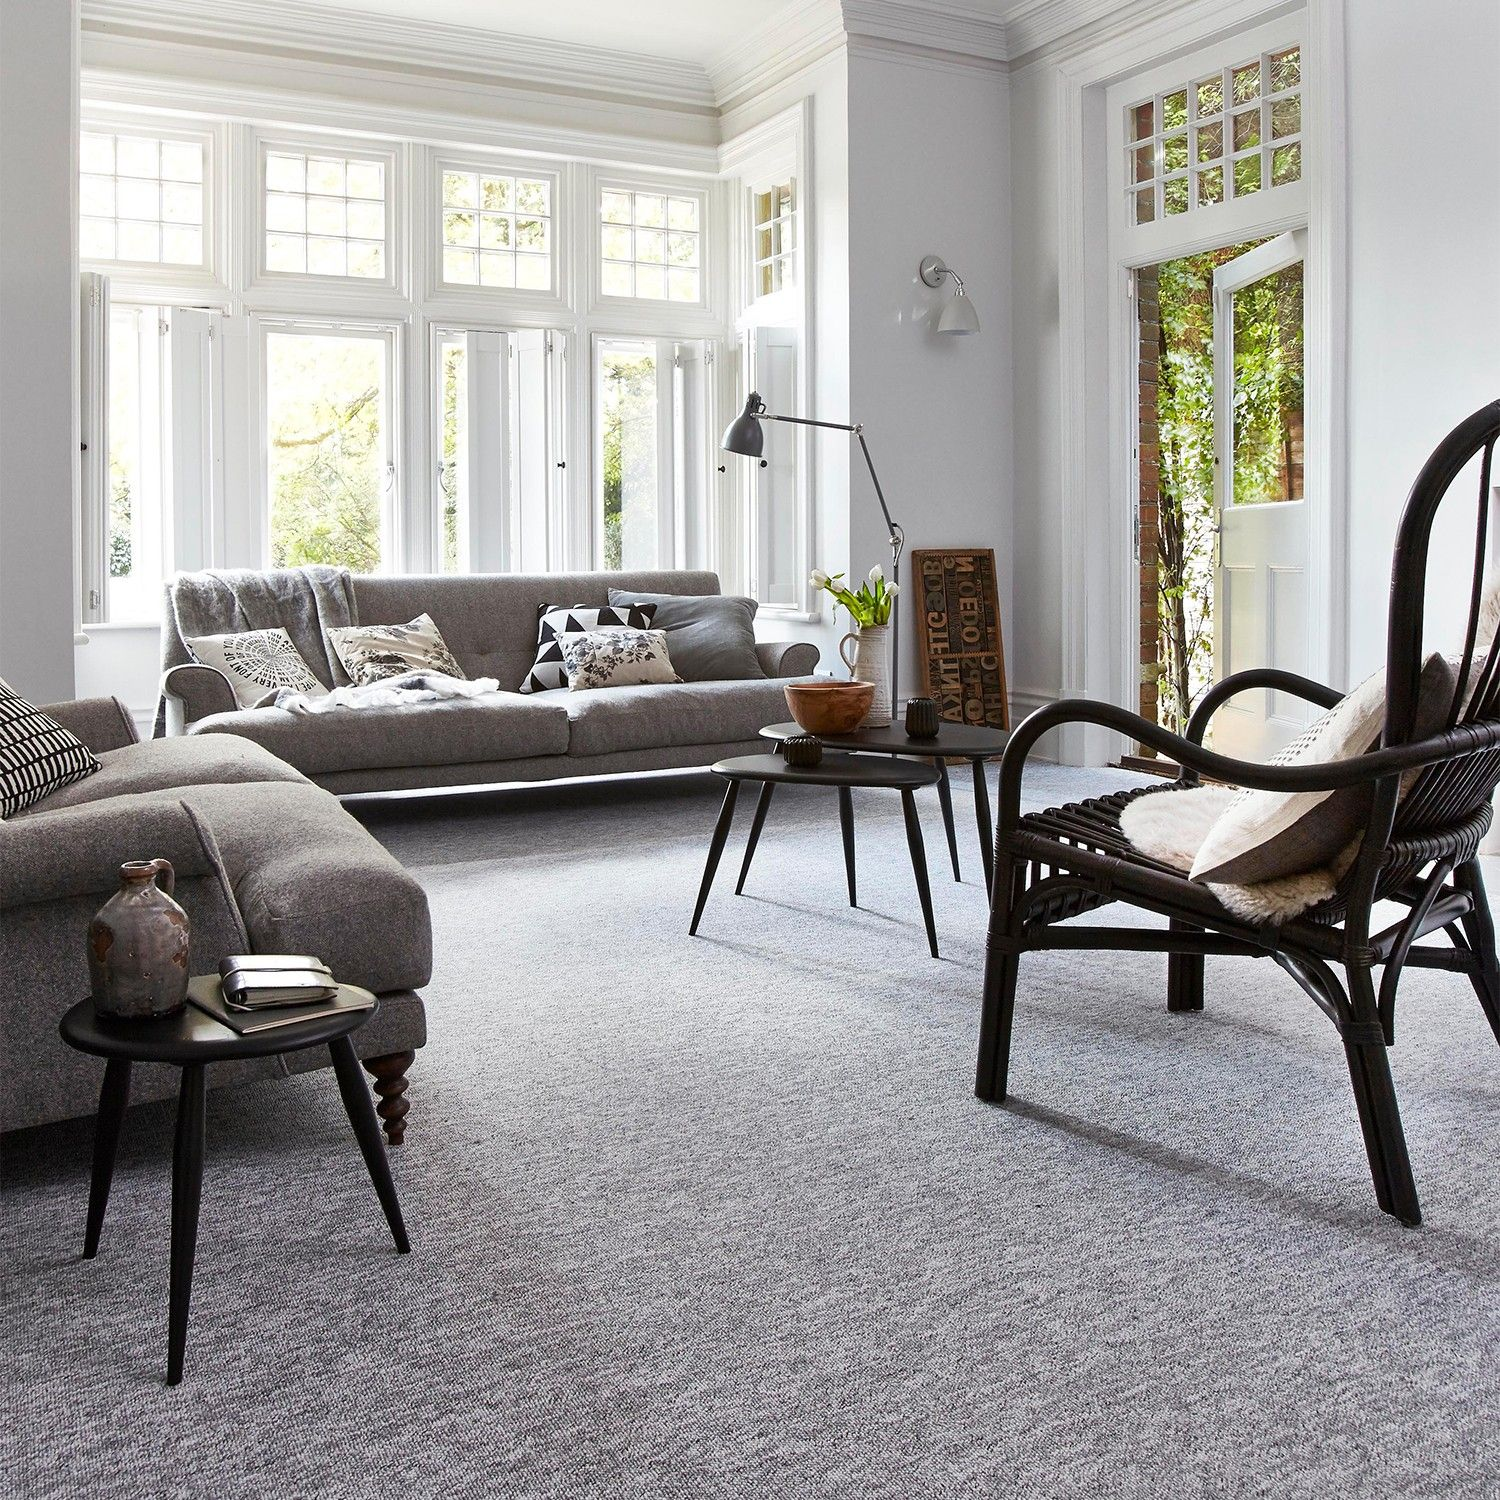 light grey carpet living room ideas designs photos india beautiful on lounge with furniture home design